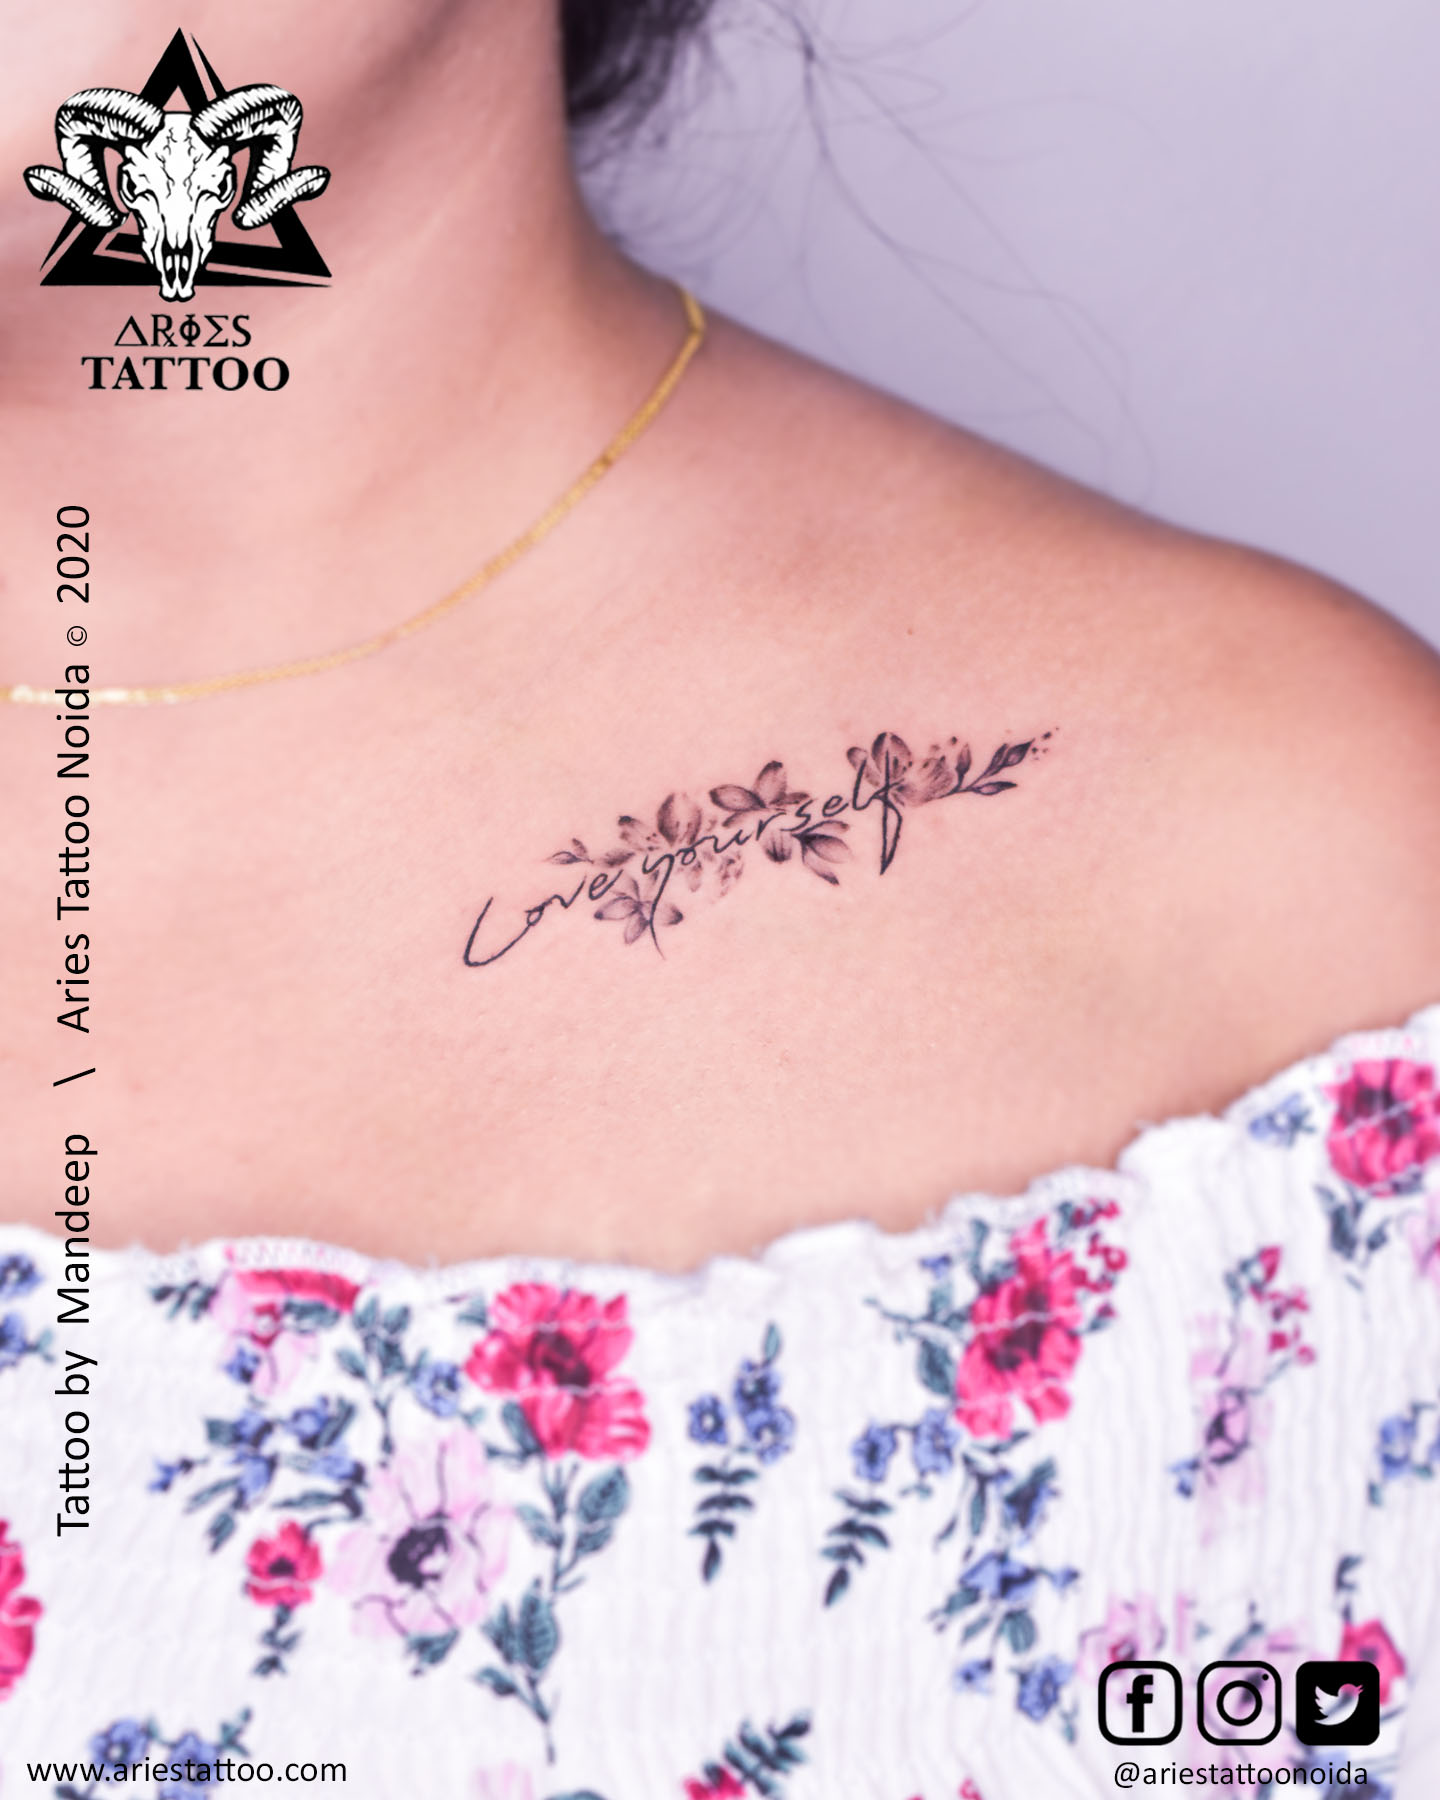 script with flower tattoo_mandeep_ariestattoonoida | |Aries Tattoo Noida | Tattoo Shop and Studio In Noida